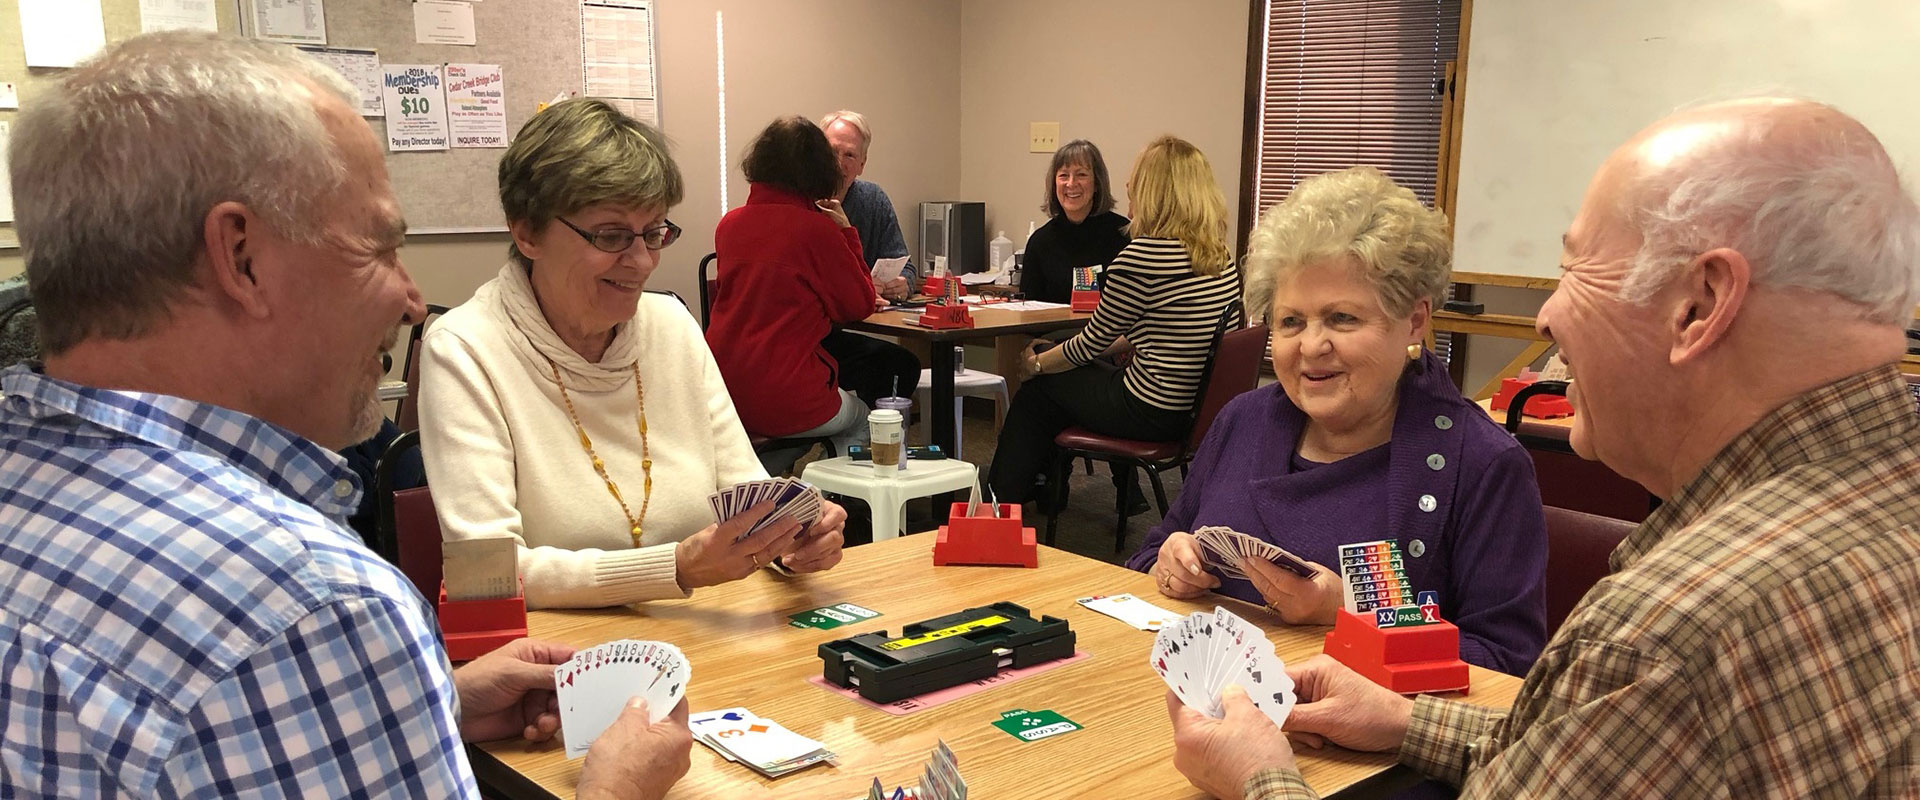 Fort Wayne Duplicate Bridge Club